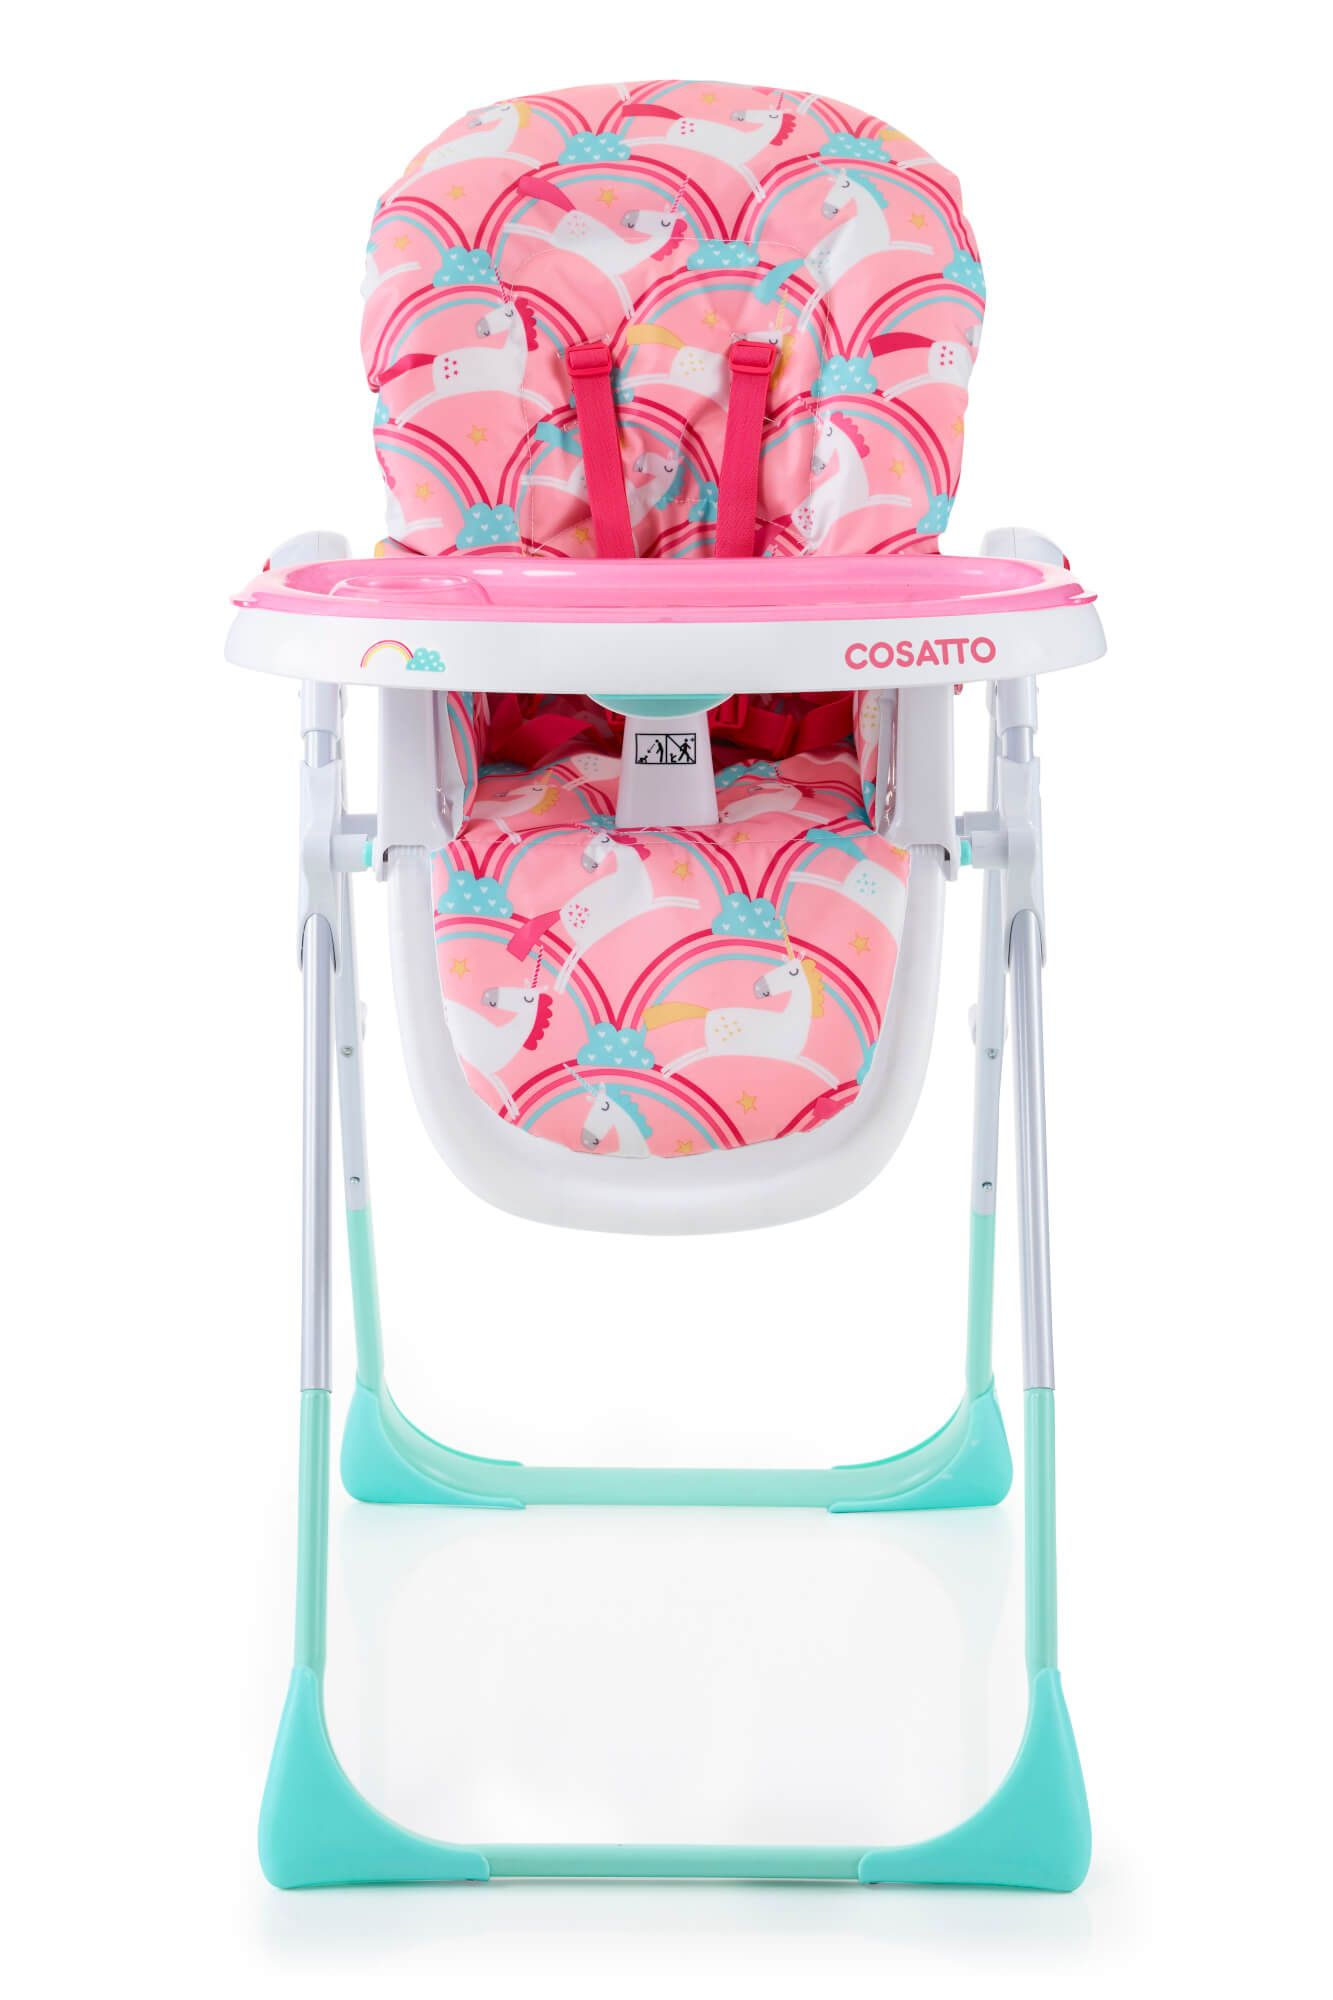 It S Highchair Vs Food And Cosatto S Noodle Supa Magic Unicorns Wins Trays Down With Easy Clean Helpful Ways Baby Equipment Baby Doll Accessories Baby Unicorn